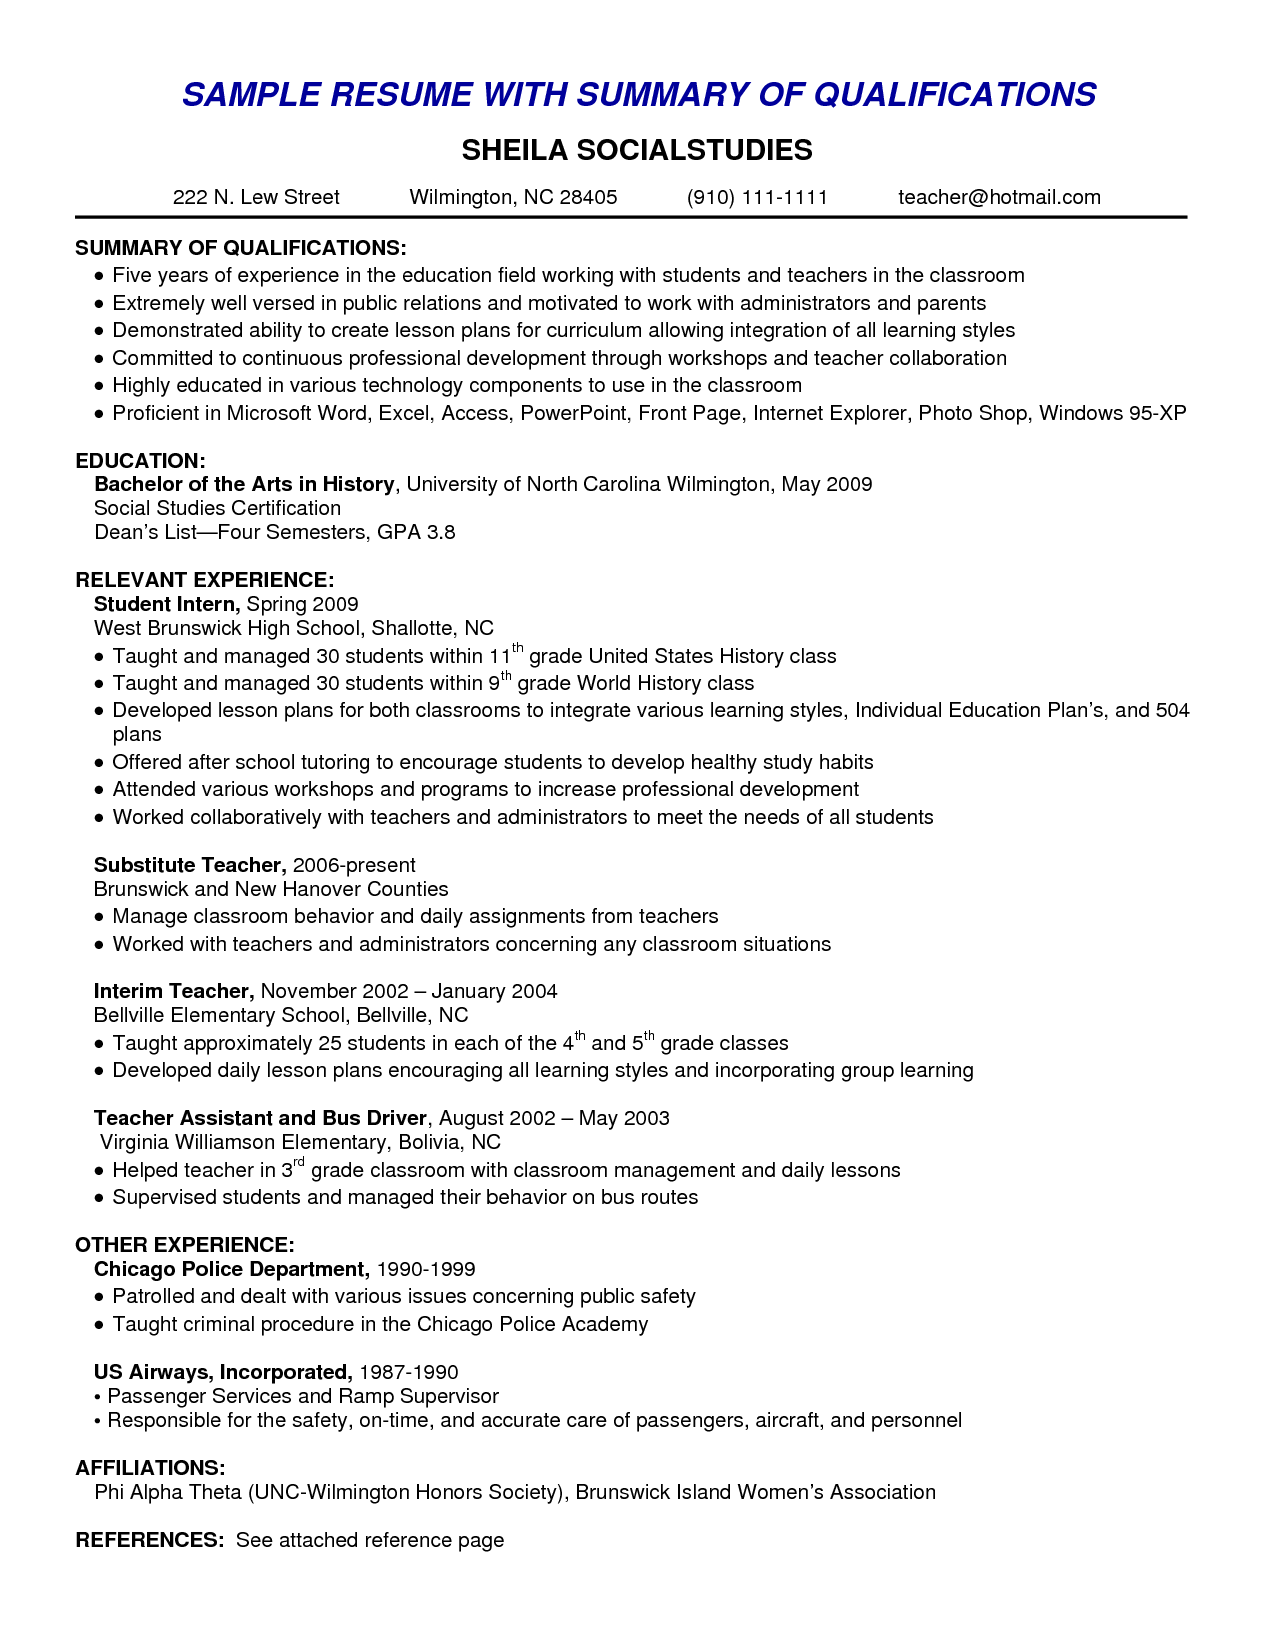 Superb Summary For Resume Examples Free Download Interview Questions And Inside Sample Resume Professional Summary